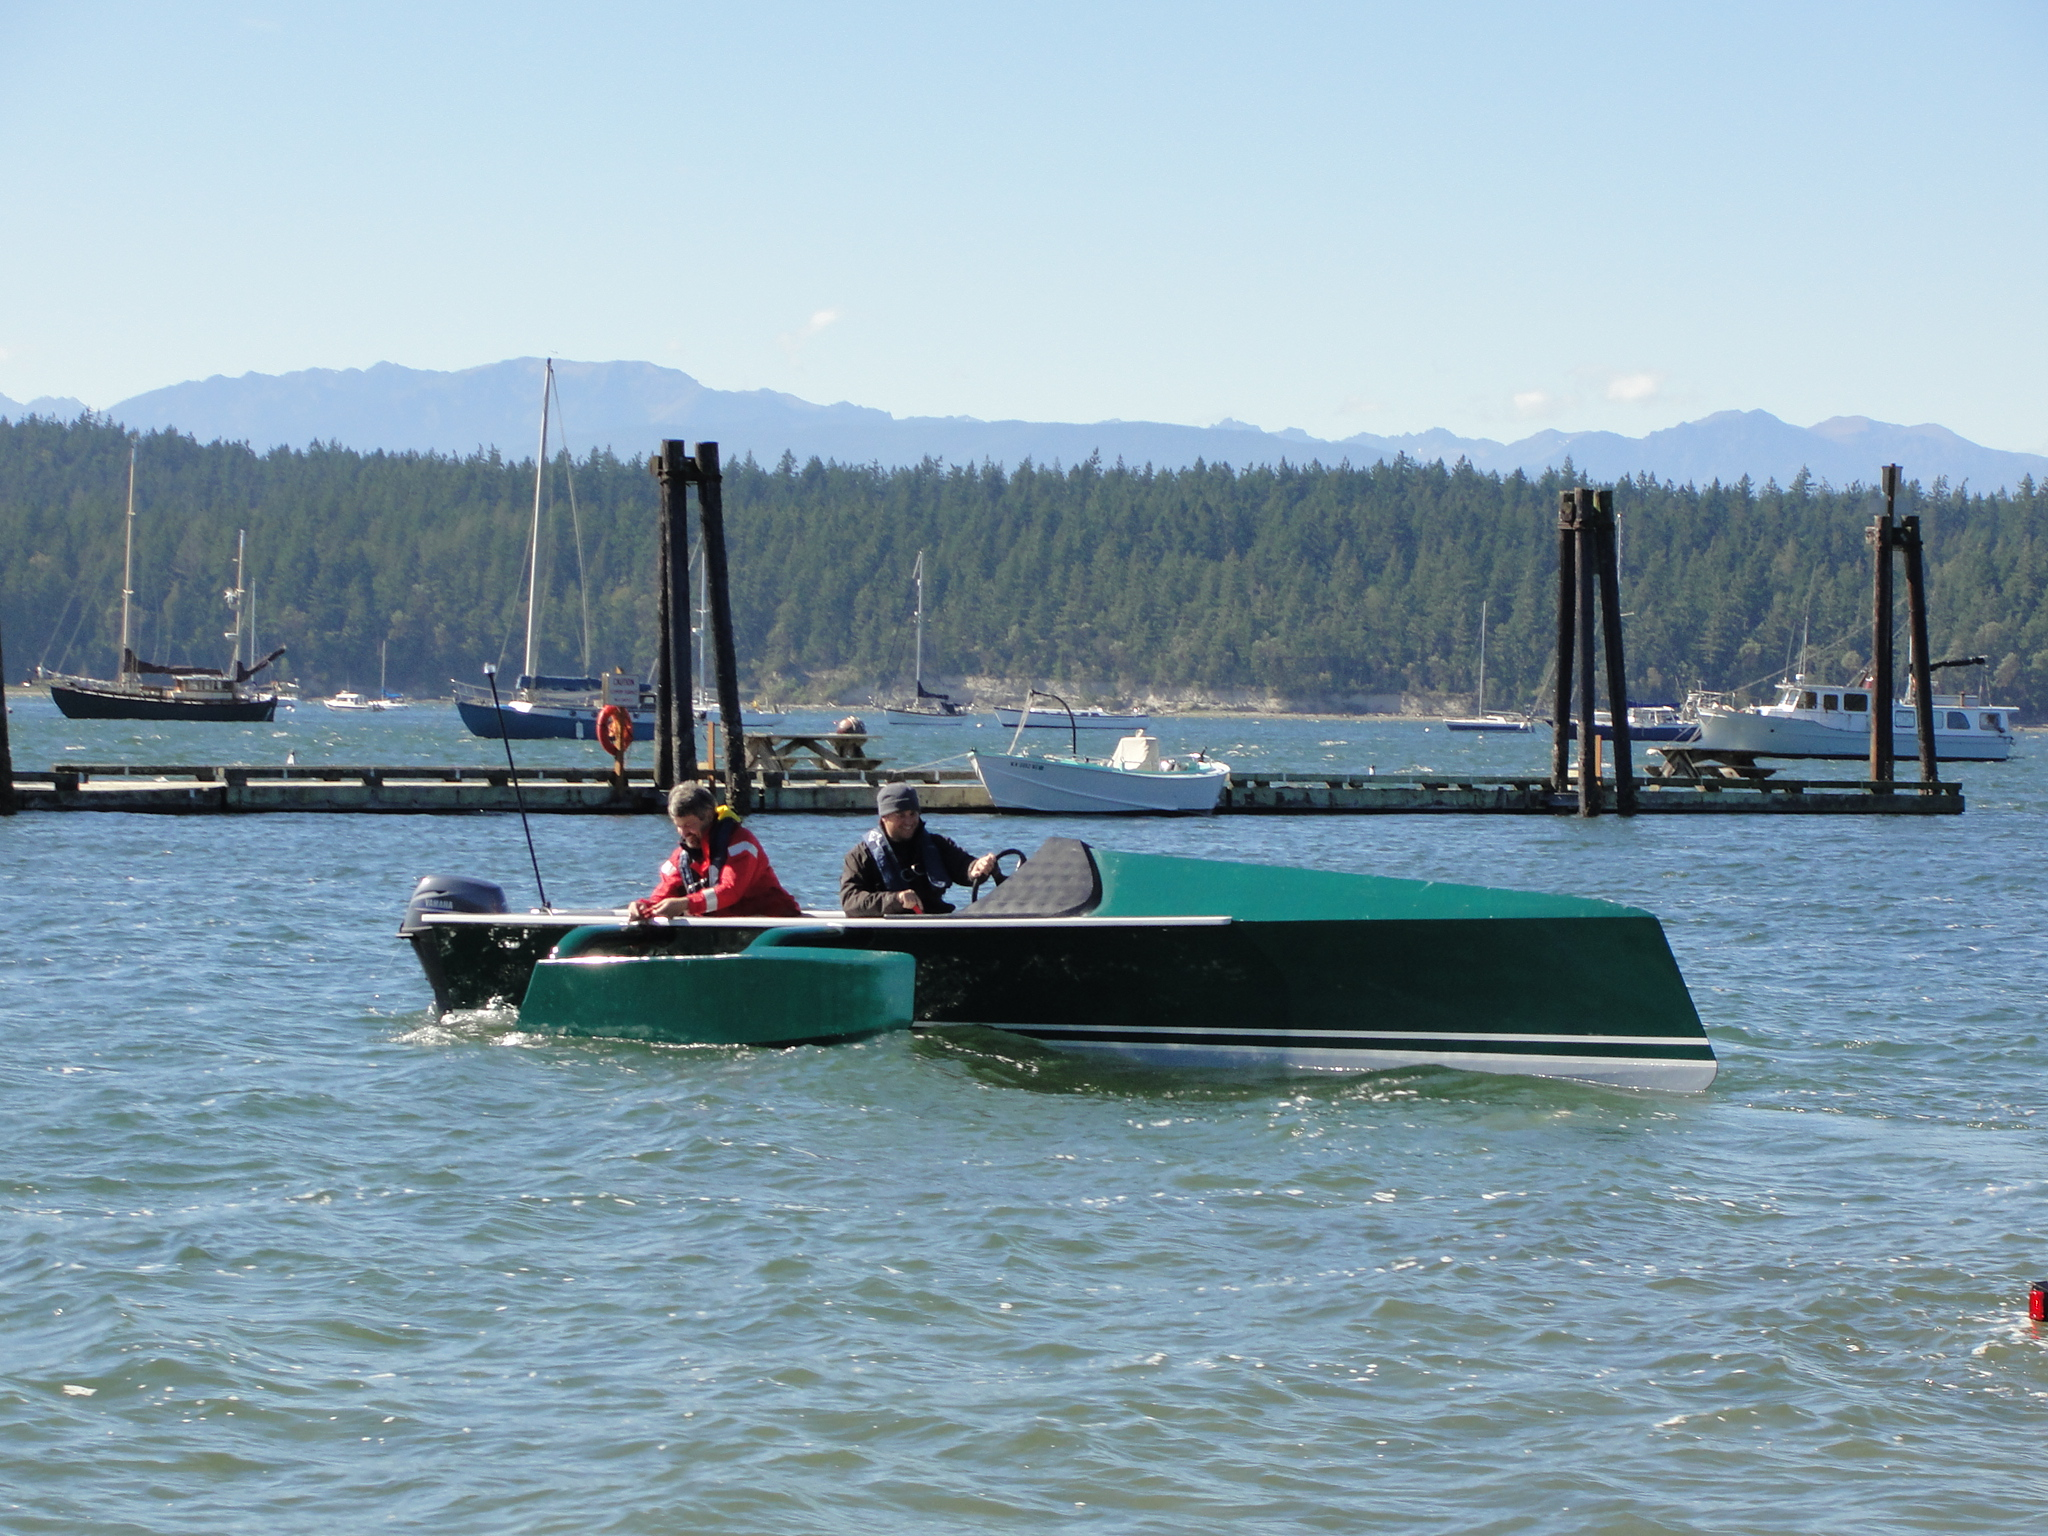 Compare performance of low-power flat-bottomed skiffs vs. catamarans